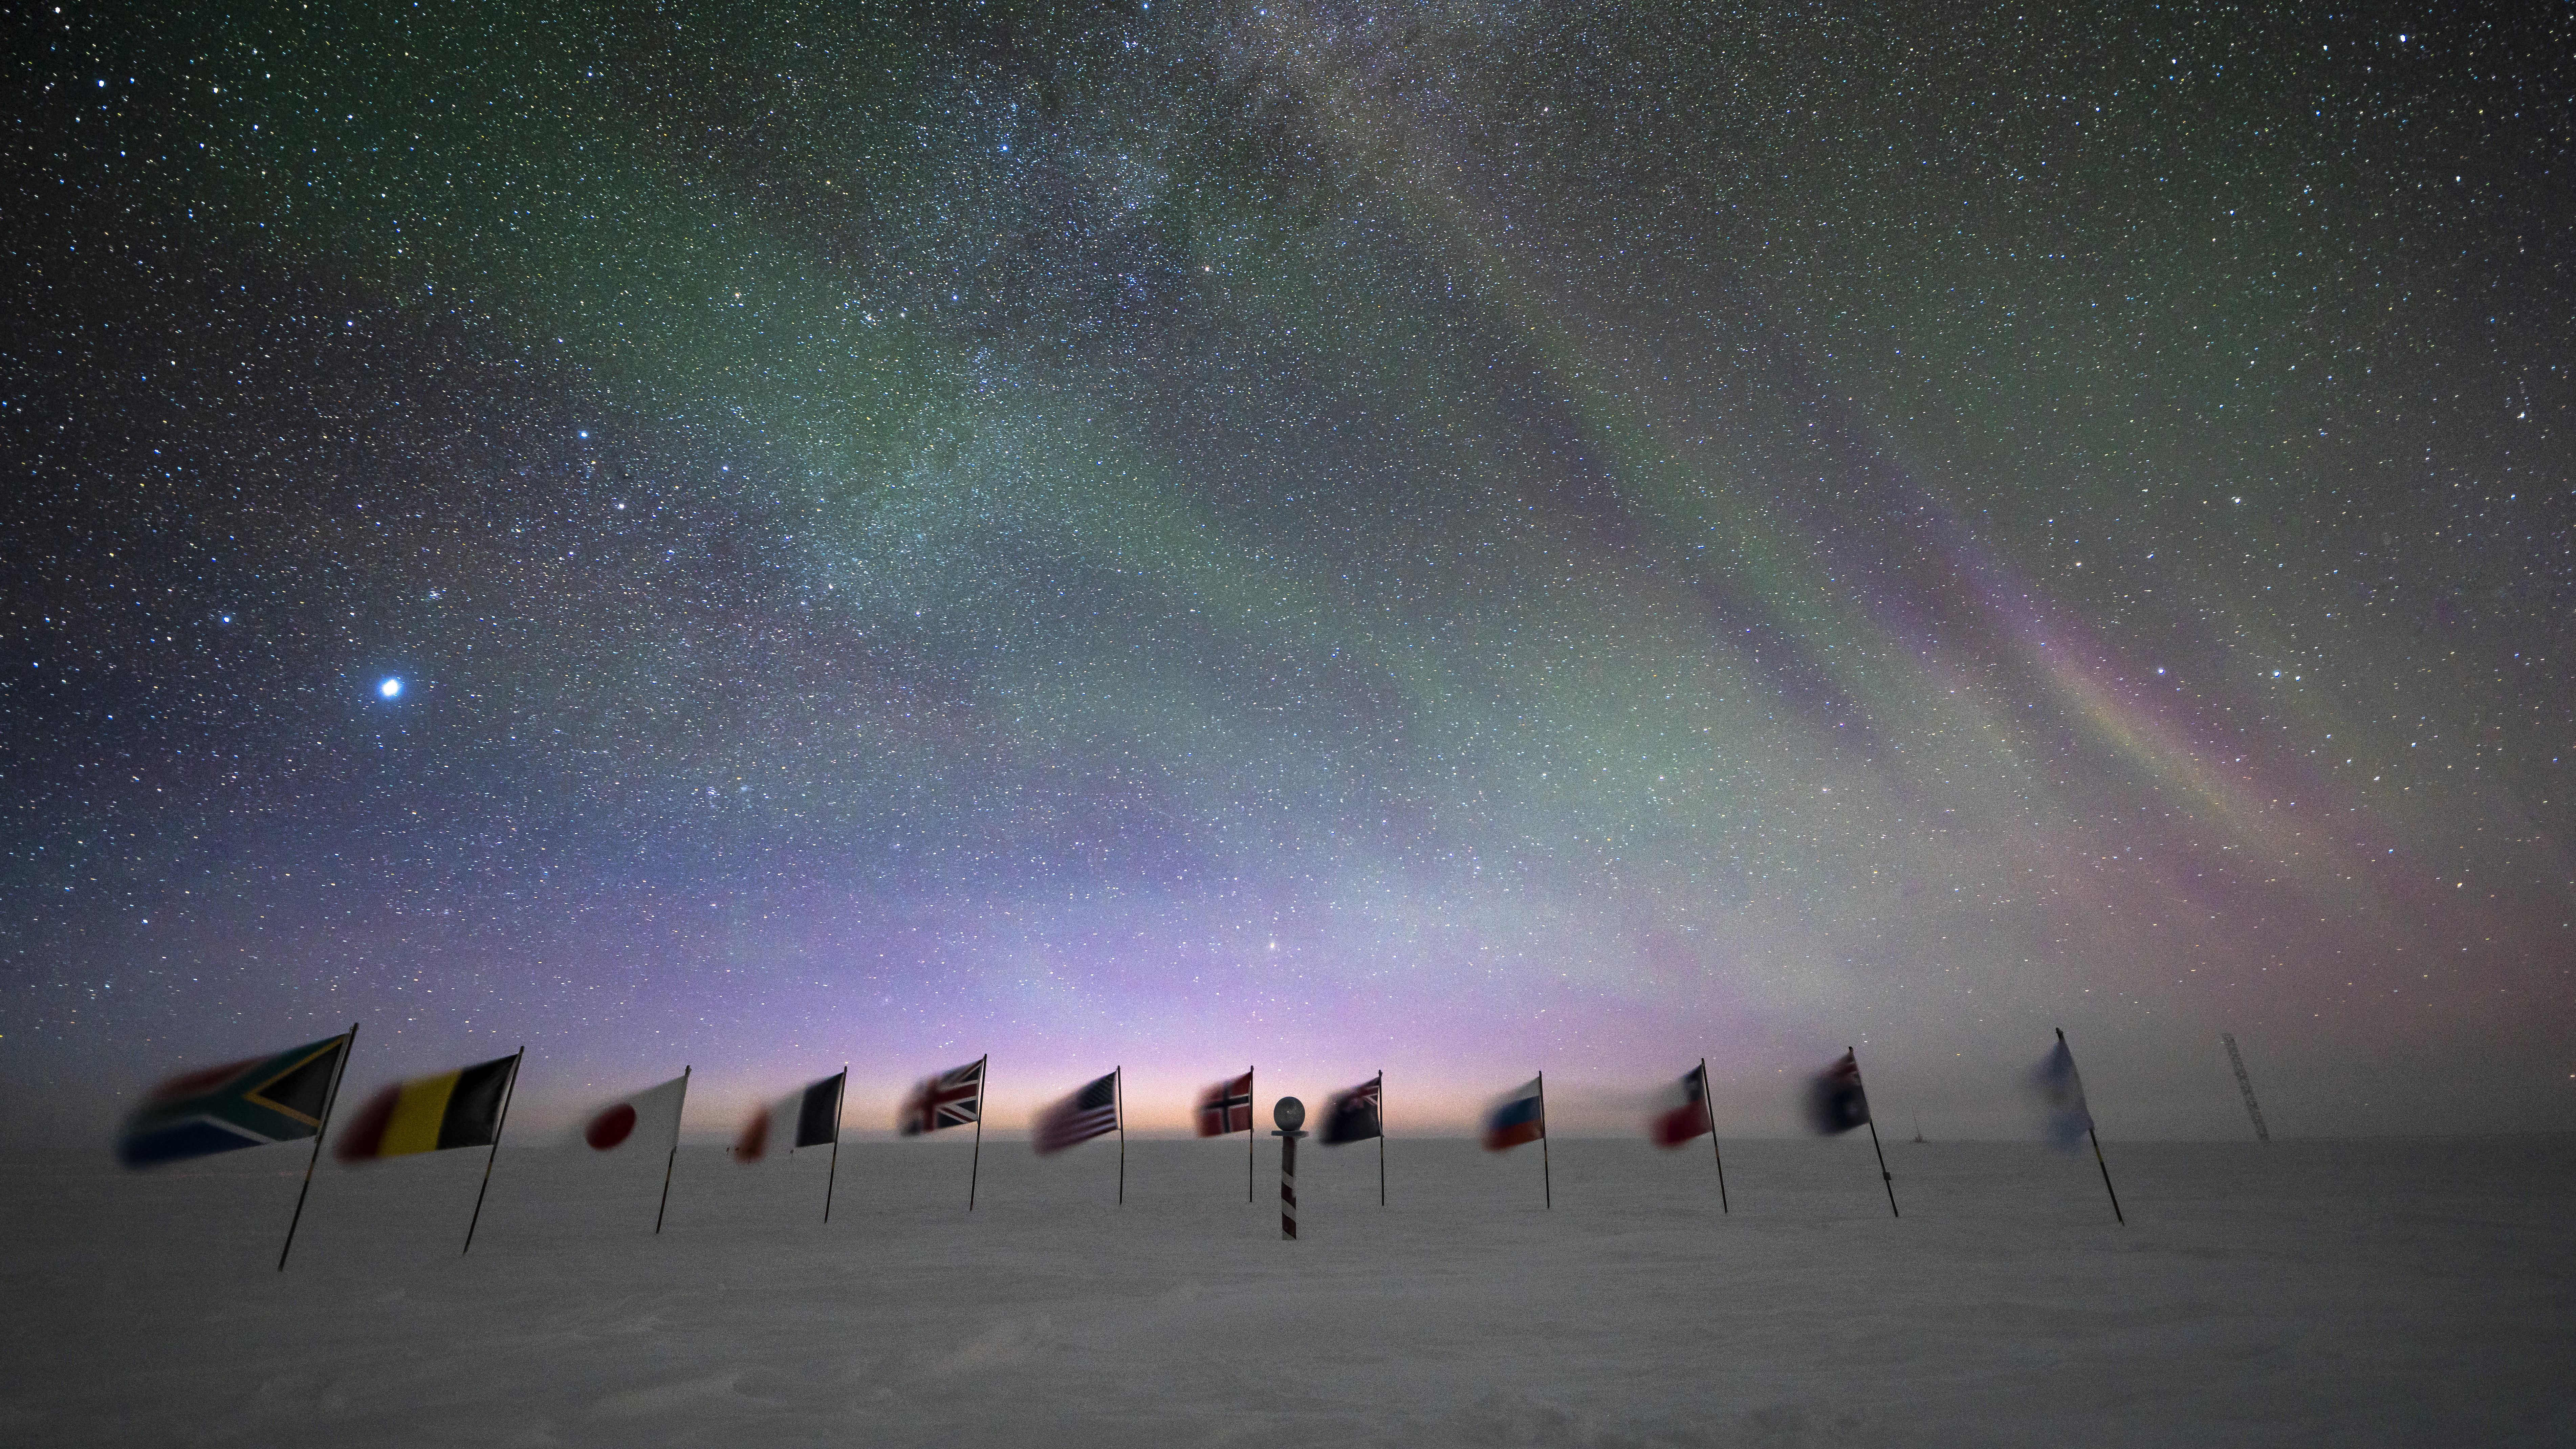 Early sunrise behing the flags at the ceremonial South Pole.